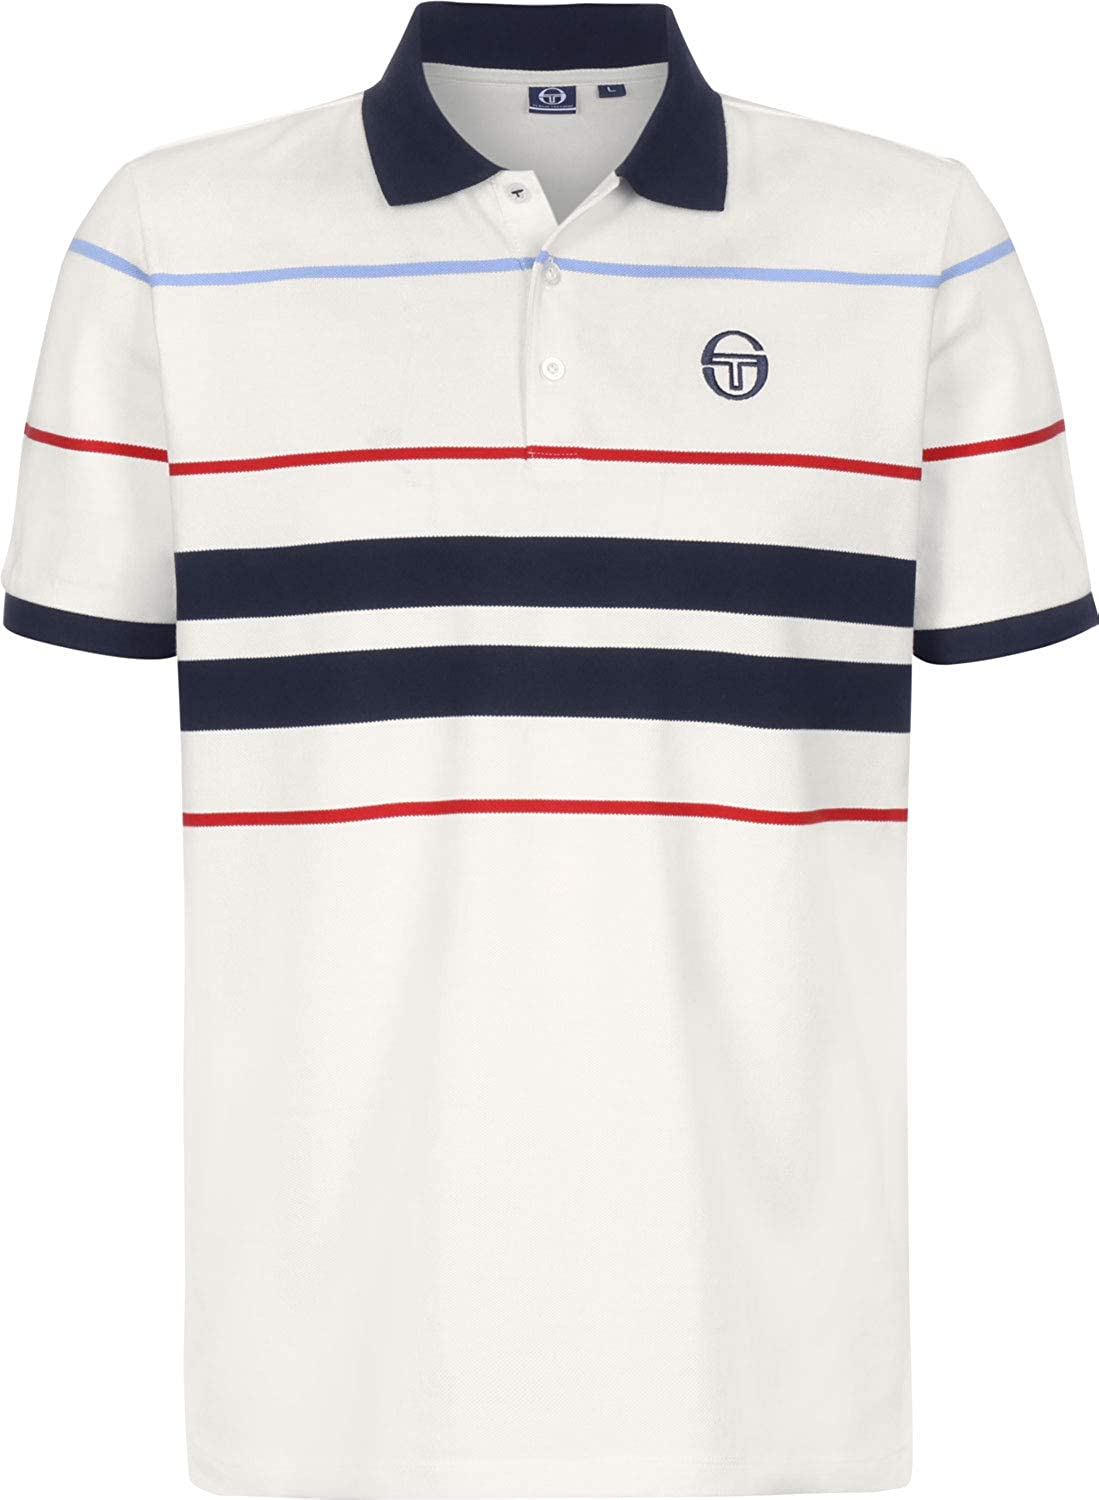 Sergio Tacchini Cloud Polo Ivory/Navy: Amazon.es: Ropa y accesorios